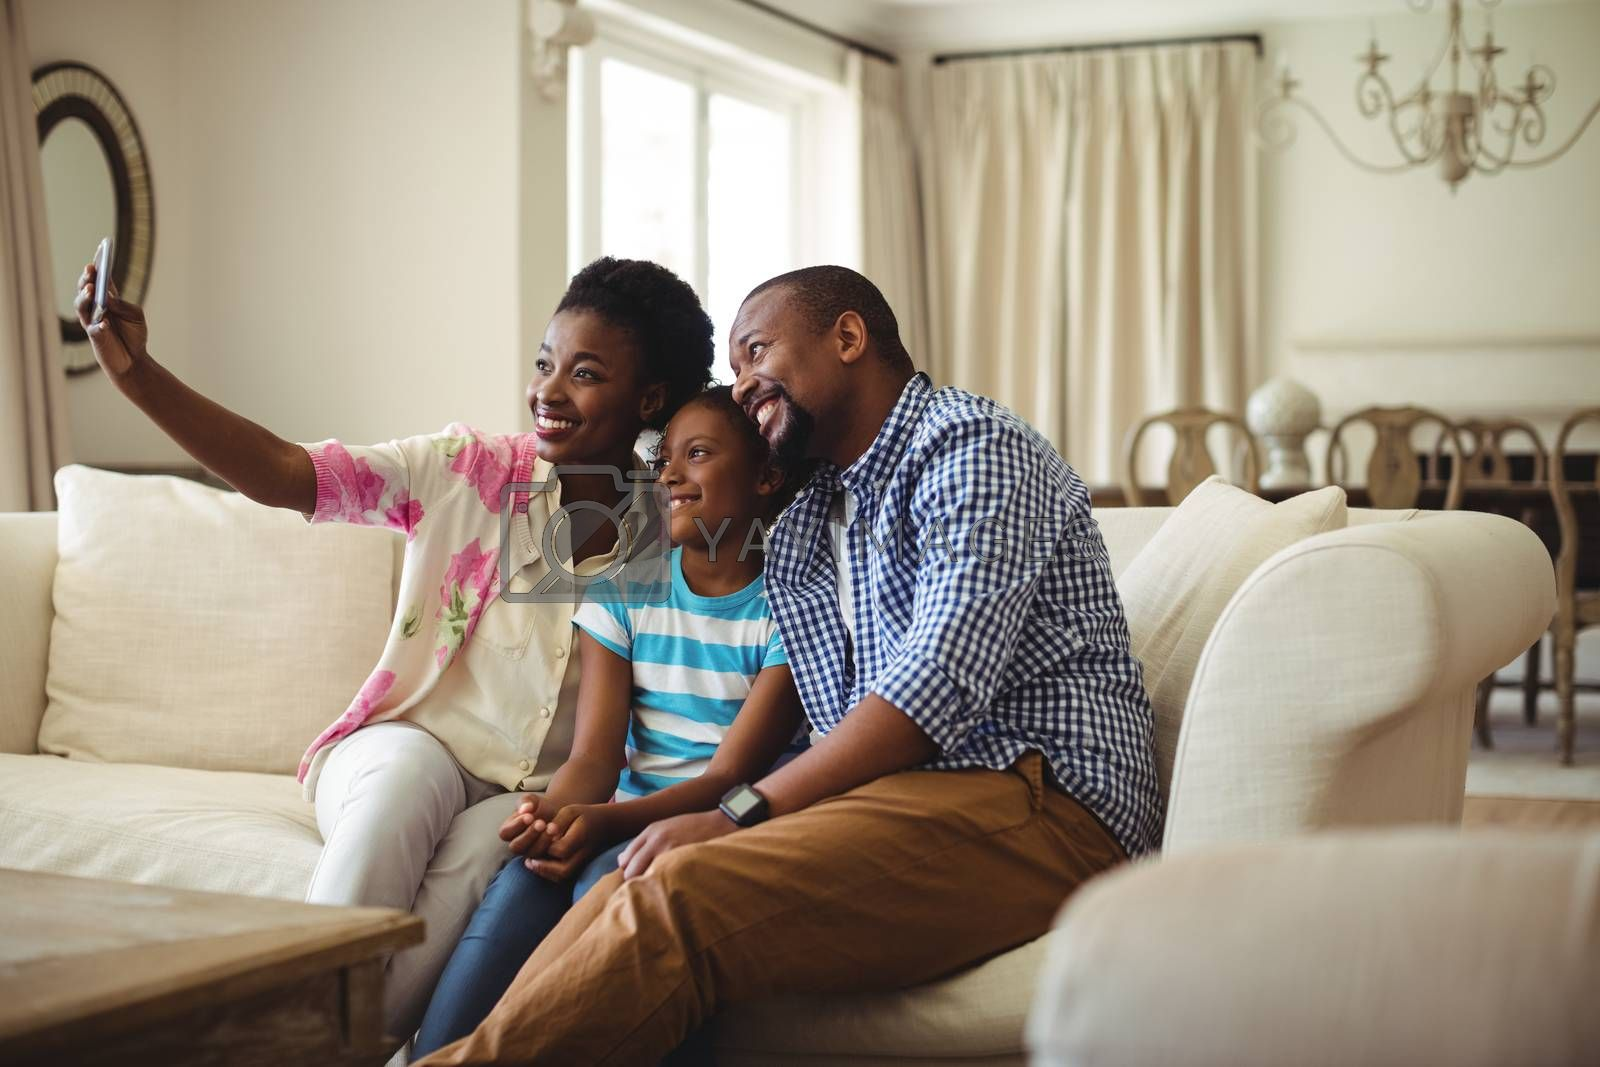 Family taking selfie on mobile phone in living room at home